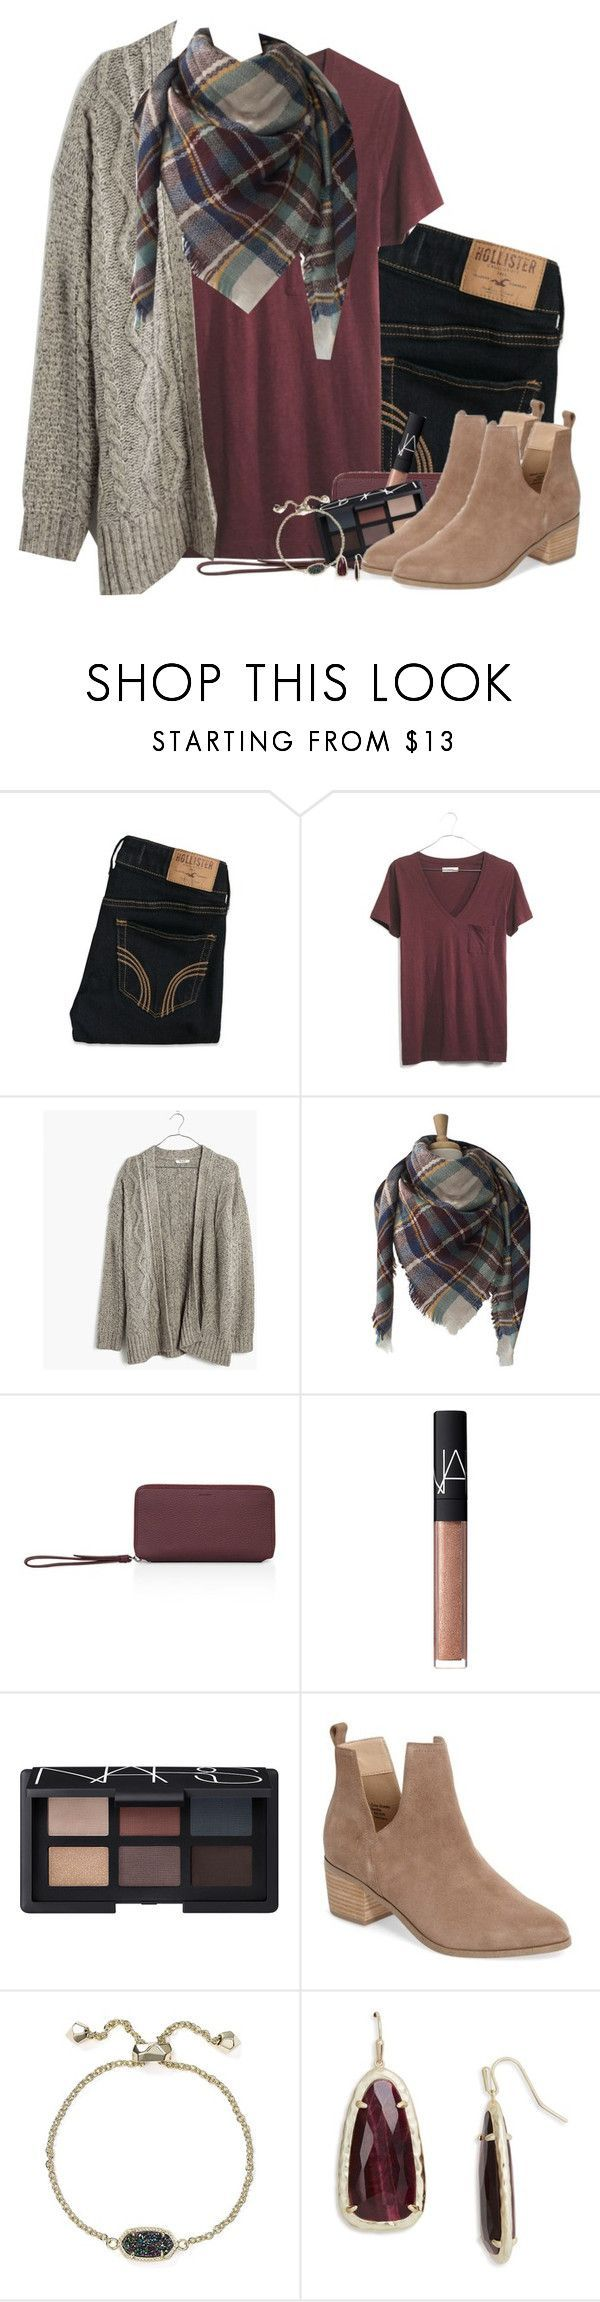 """Chunky cardigan, plaid scarf & burgundy tee"" by steffiestaffie ❤ liked on Polyvore featuring Hollister Co., Madewell, AllSaints, NARS Cosmetics, Sole Society and Kendra Scott"